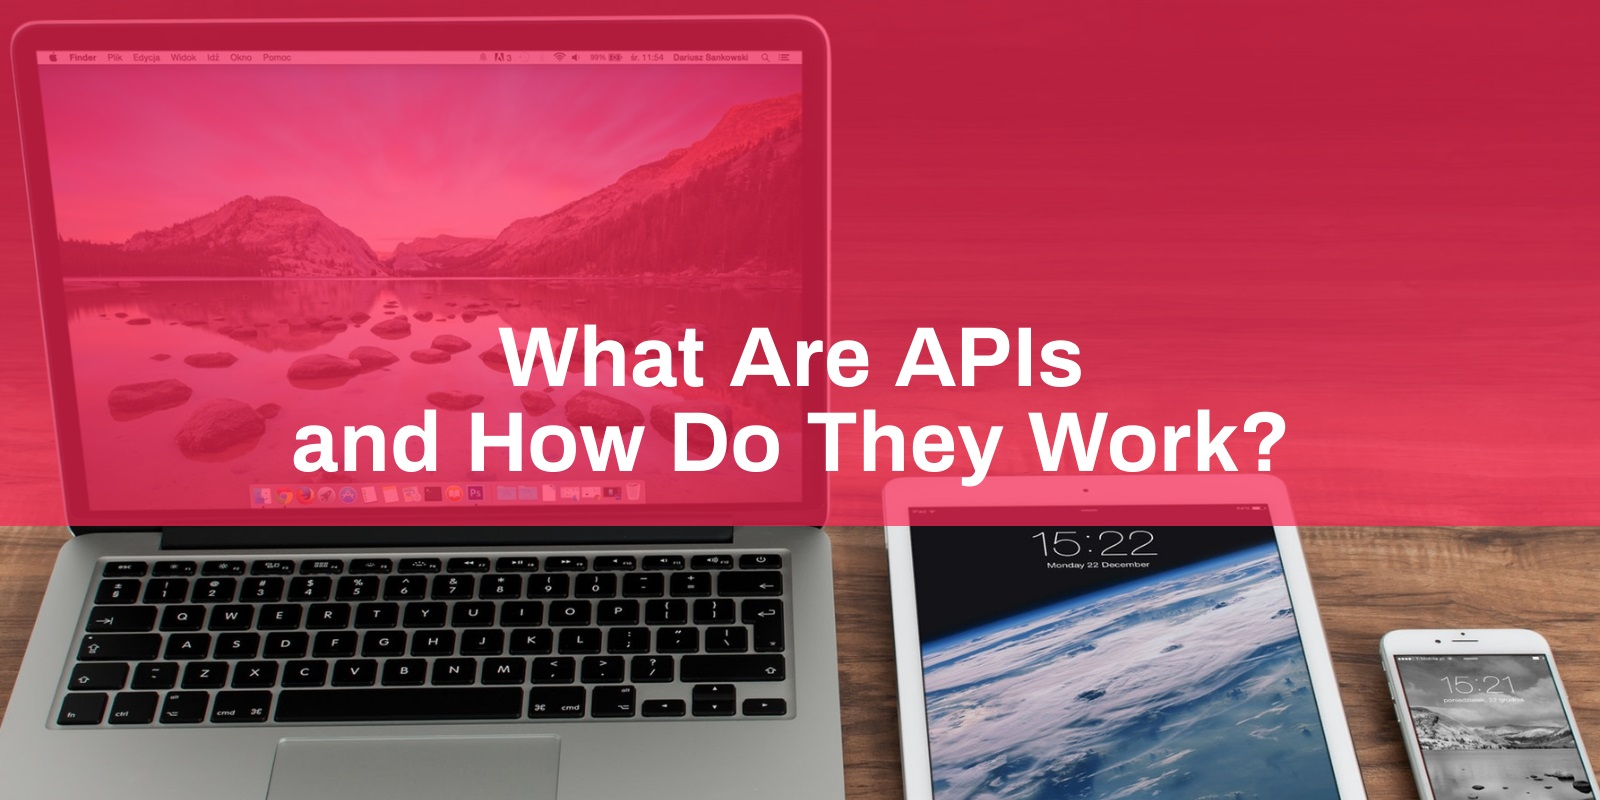 What Are APIs and How Do They Work?